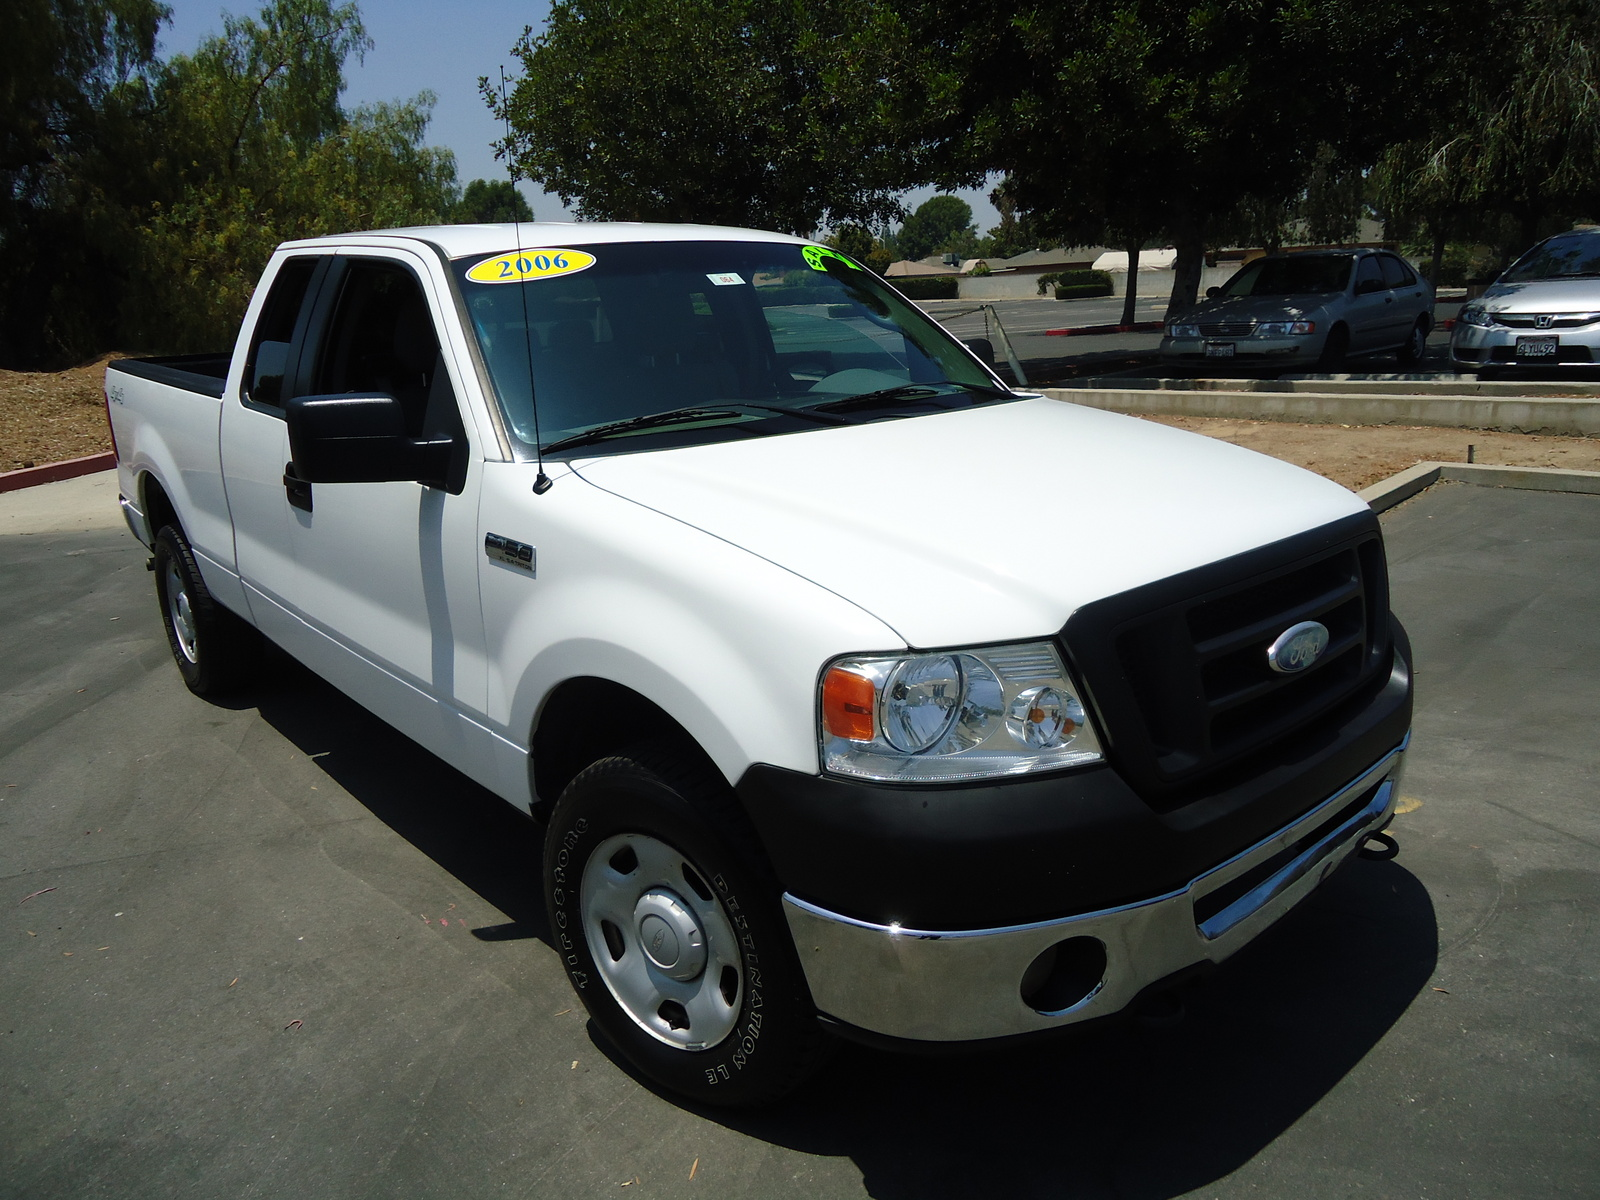 2006 Ford F-150 - Pictures